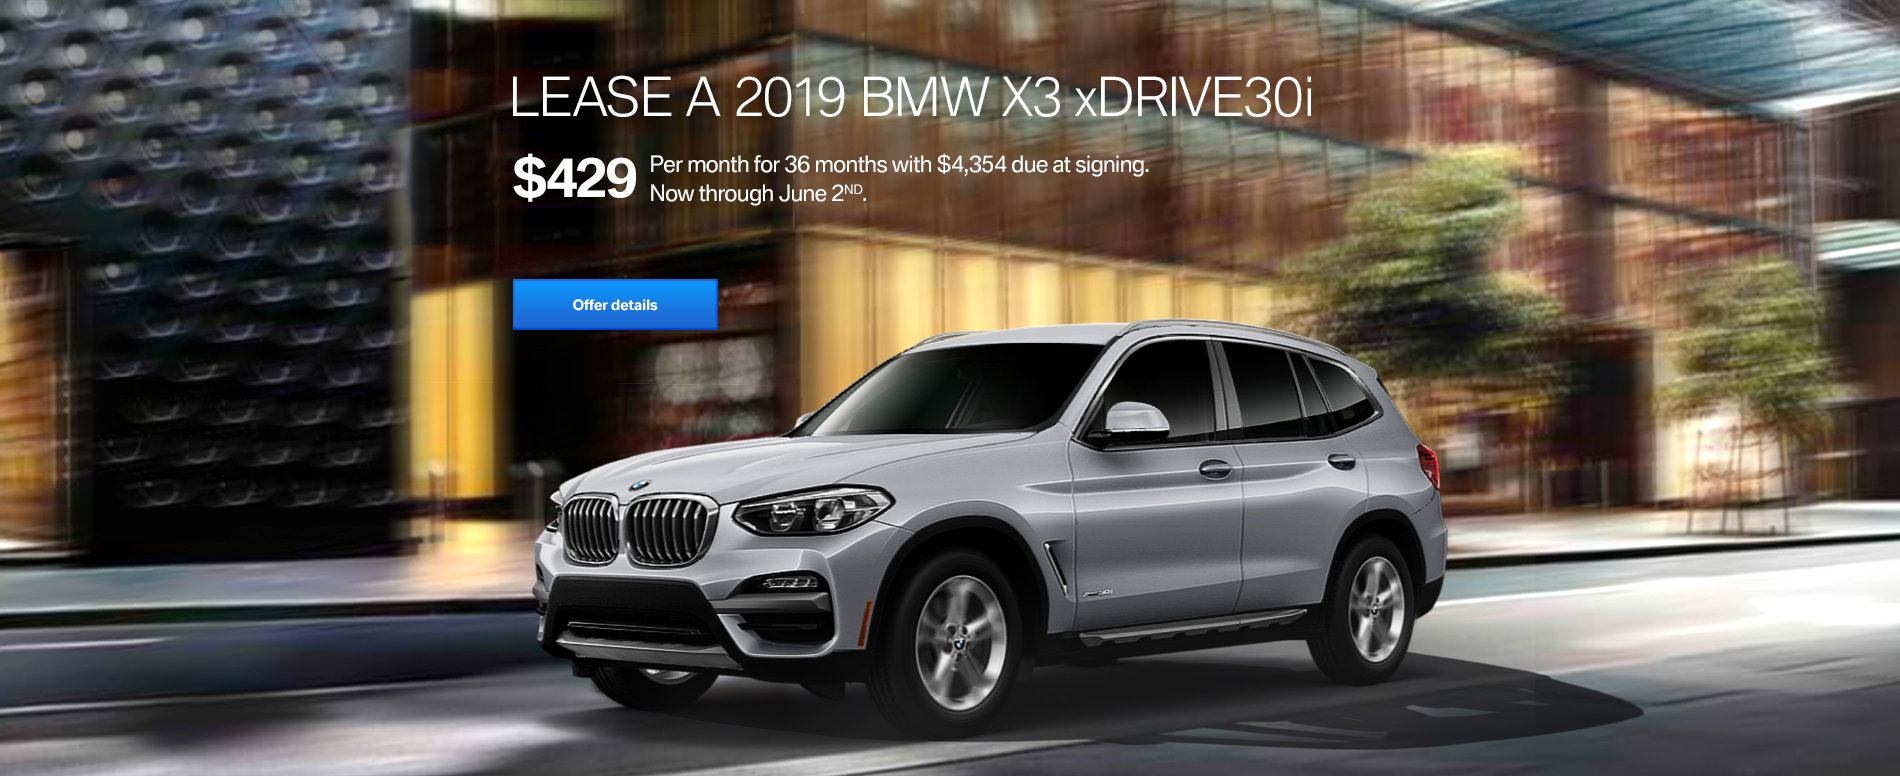 LEASE A 2019 BMW X3 xDRIVE30i FOR $429/MONTH FOR 36 MONTHS WITH